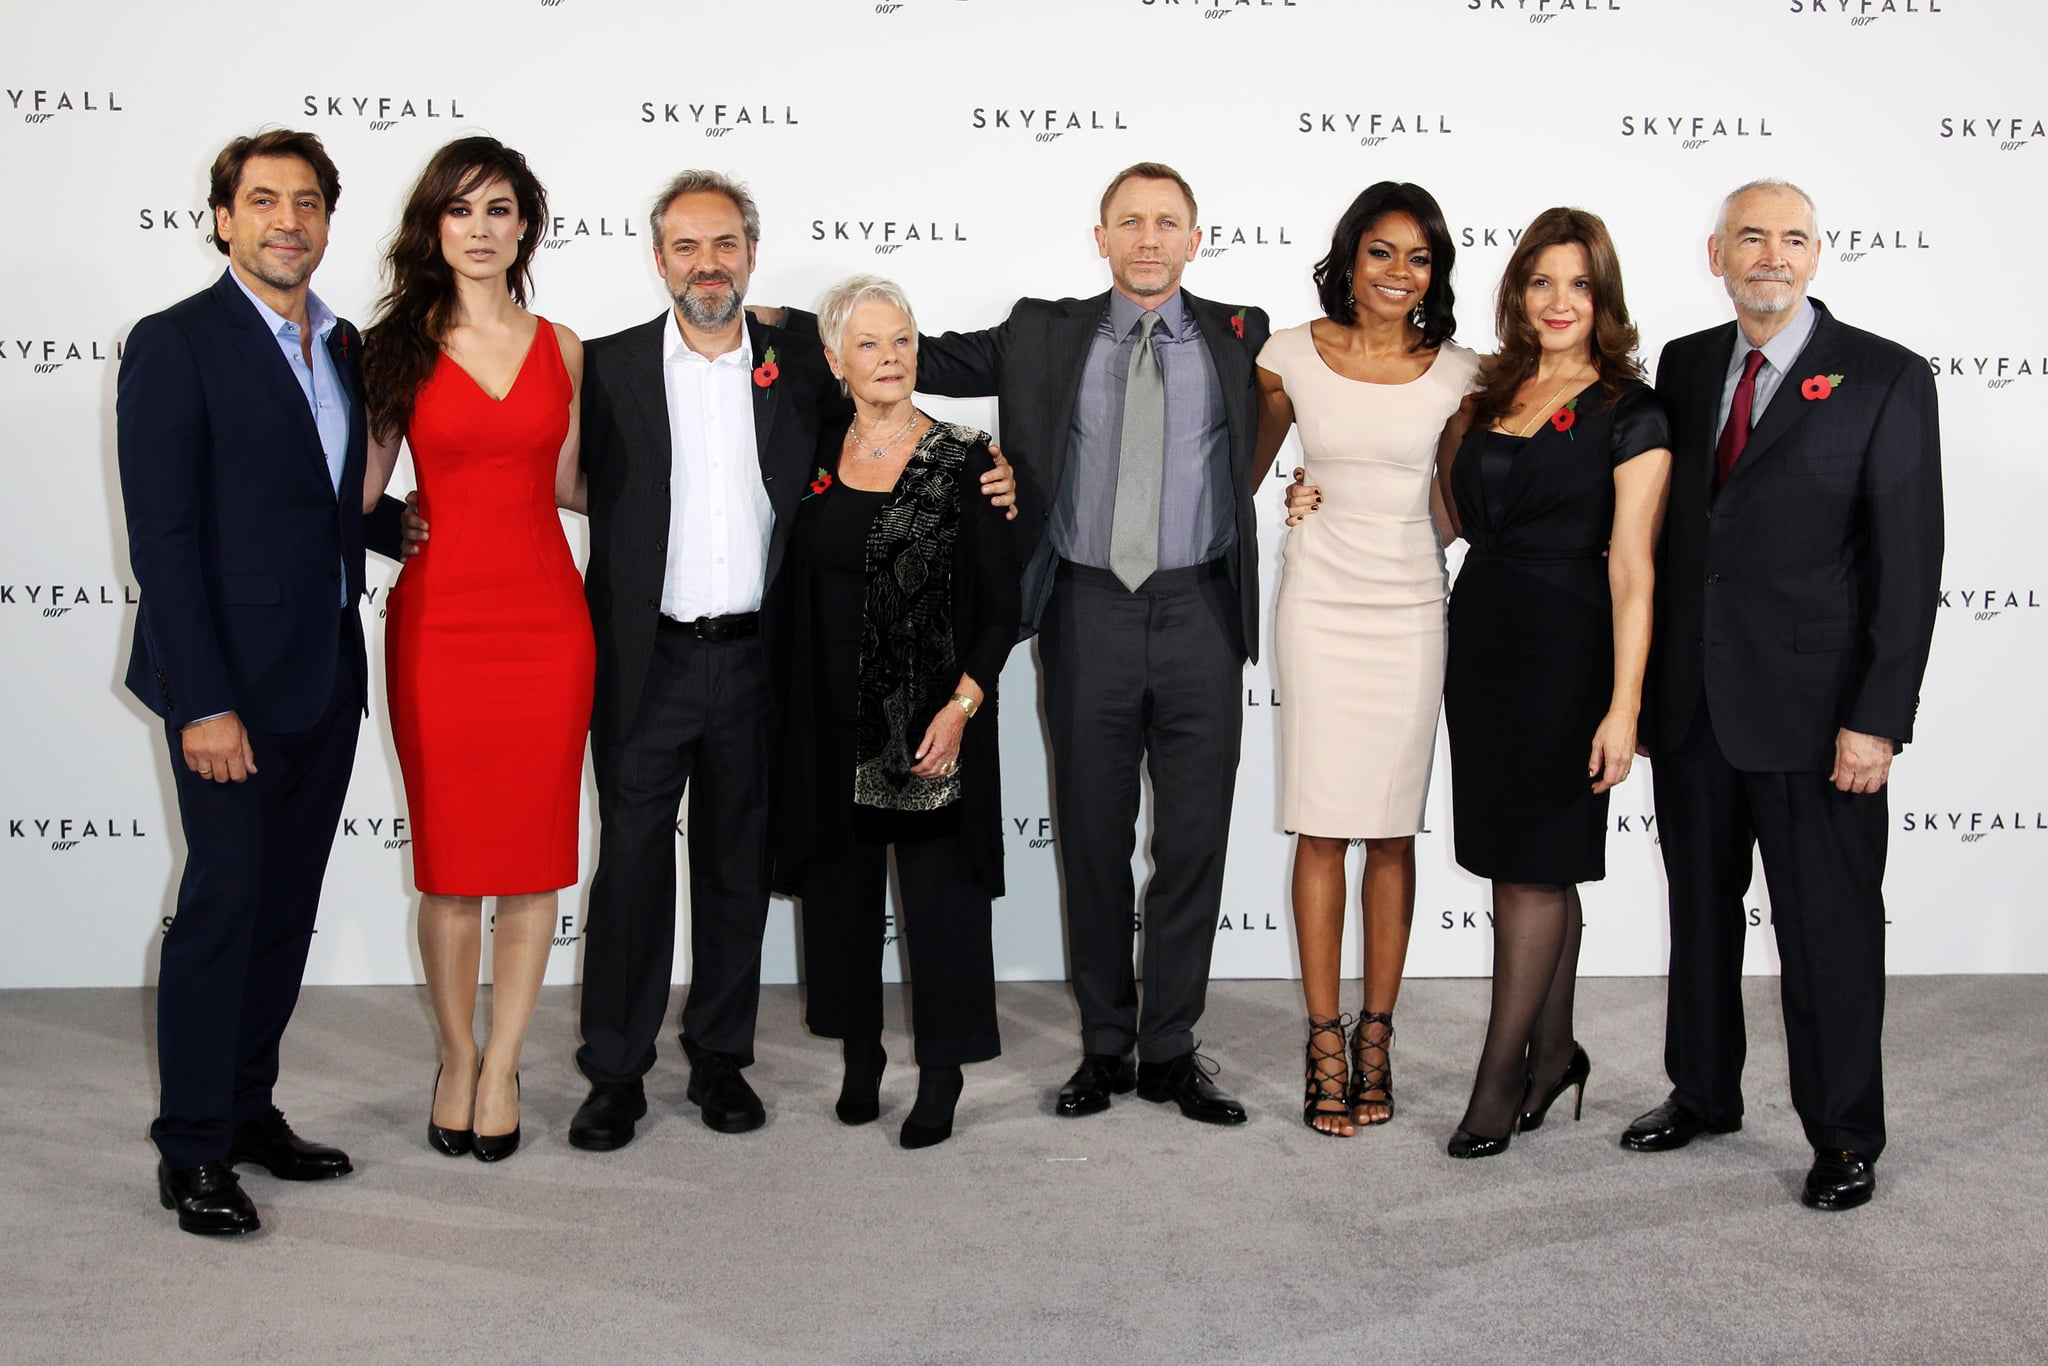 The cast of Skyfall took a spin for the cameras.